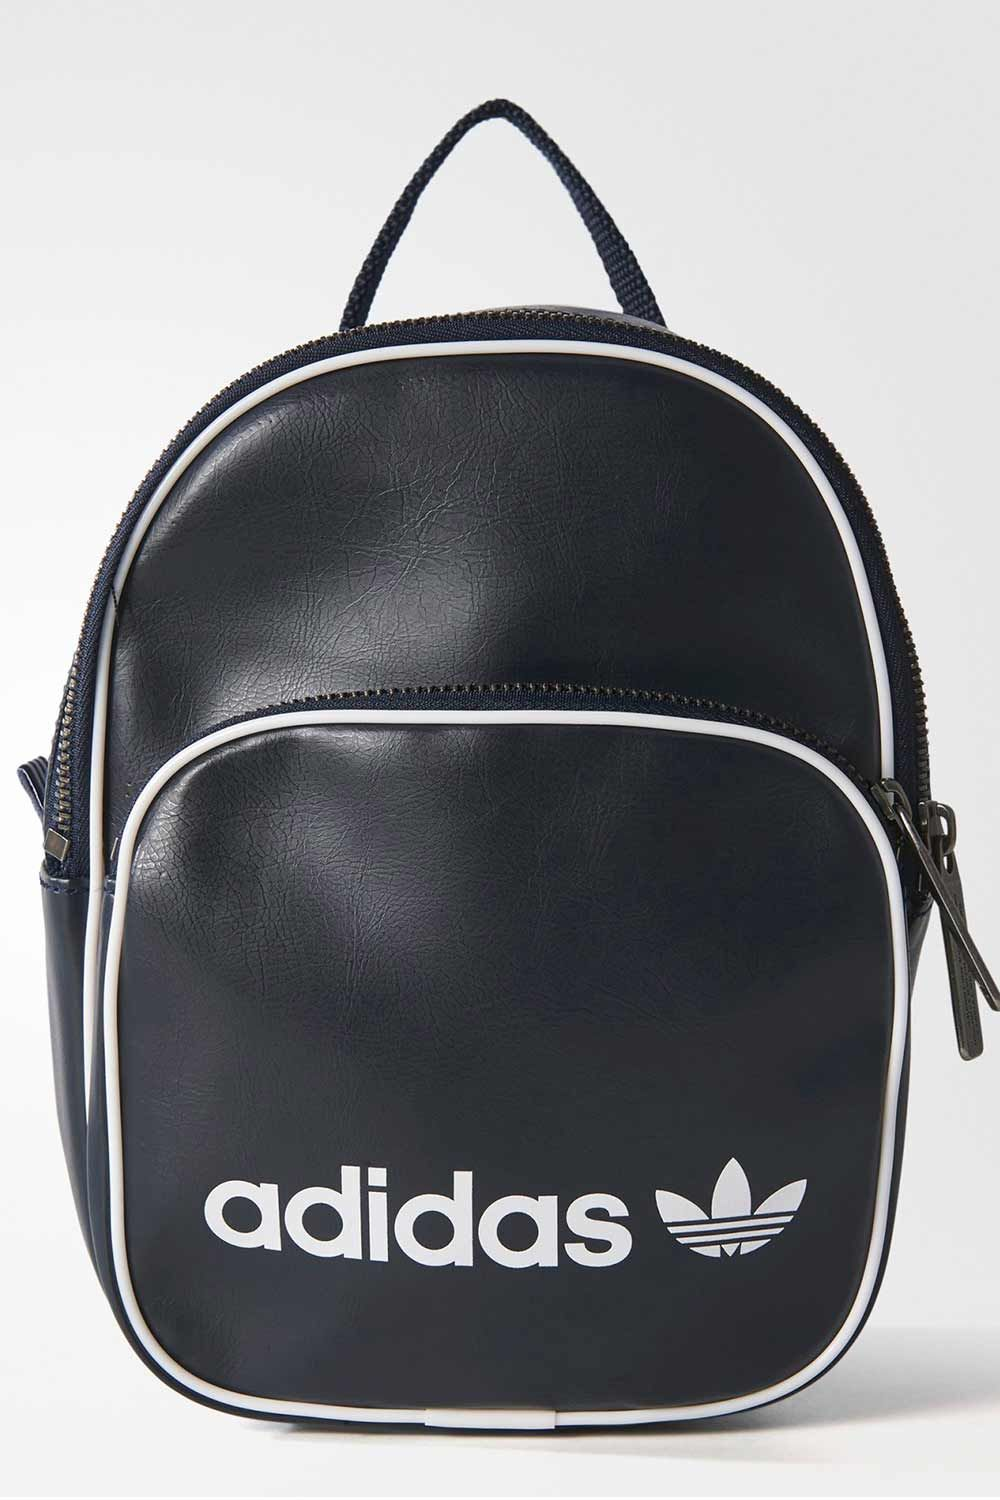 17c7420ed MOCHILA ADIDAS ORIGINALS BP CLASS X MINI PRETO - BabadoTop ...